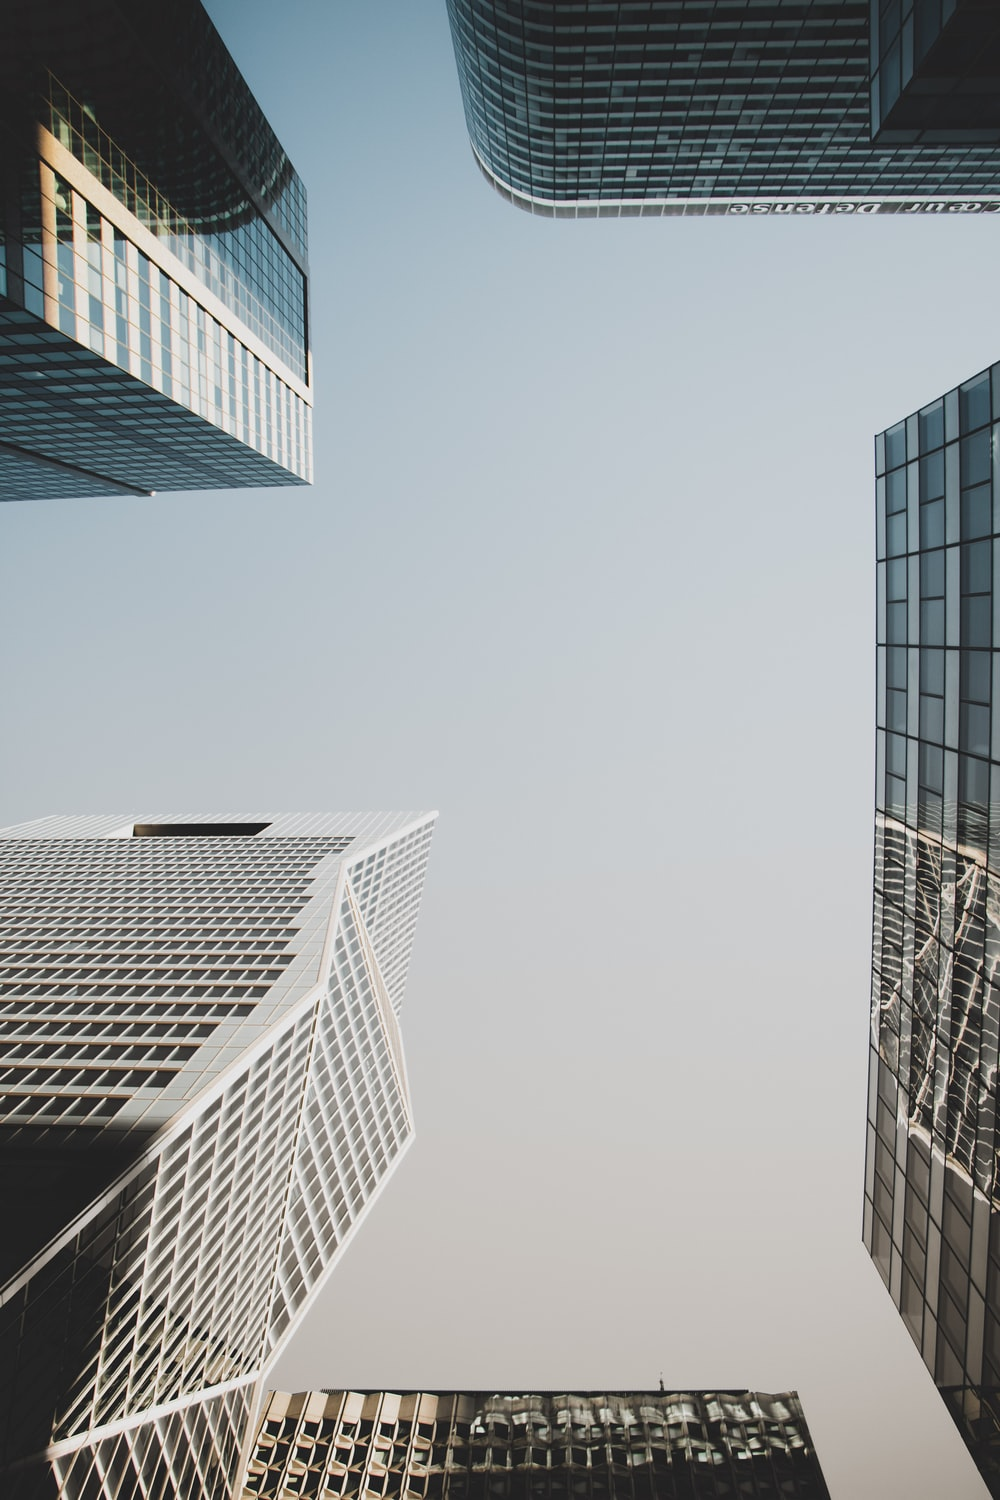 low angle photography of concrete buildings